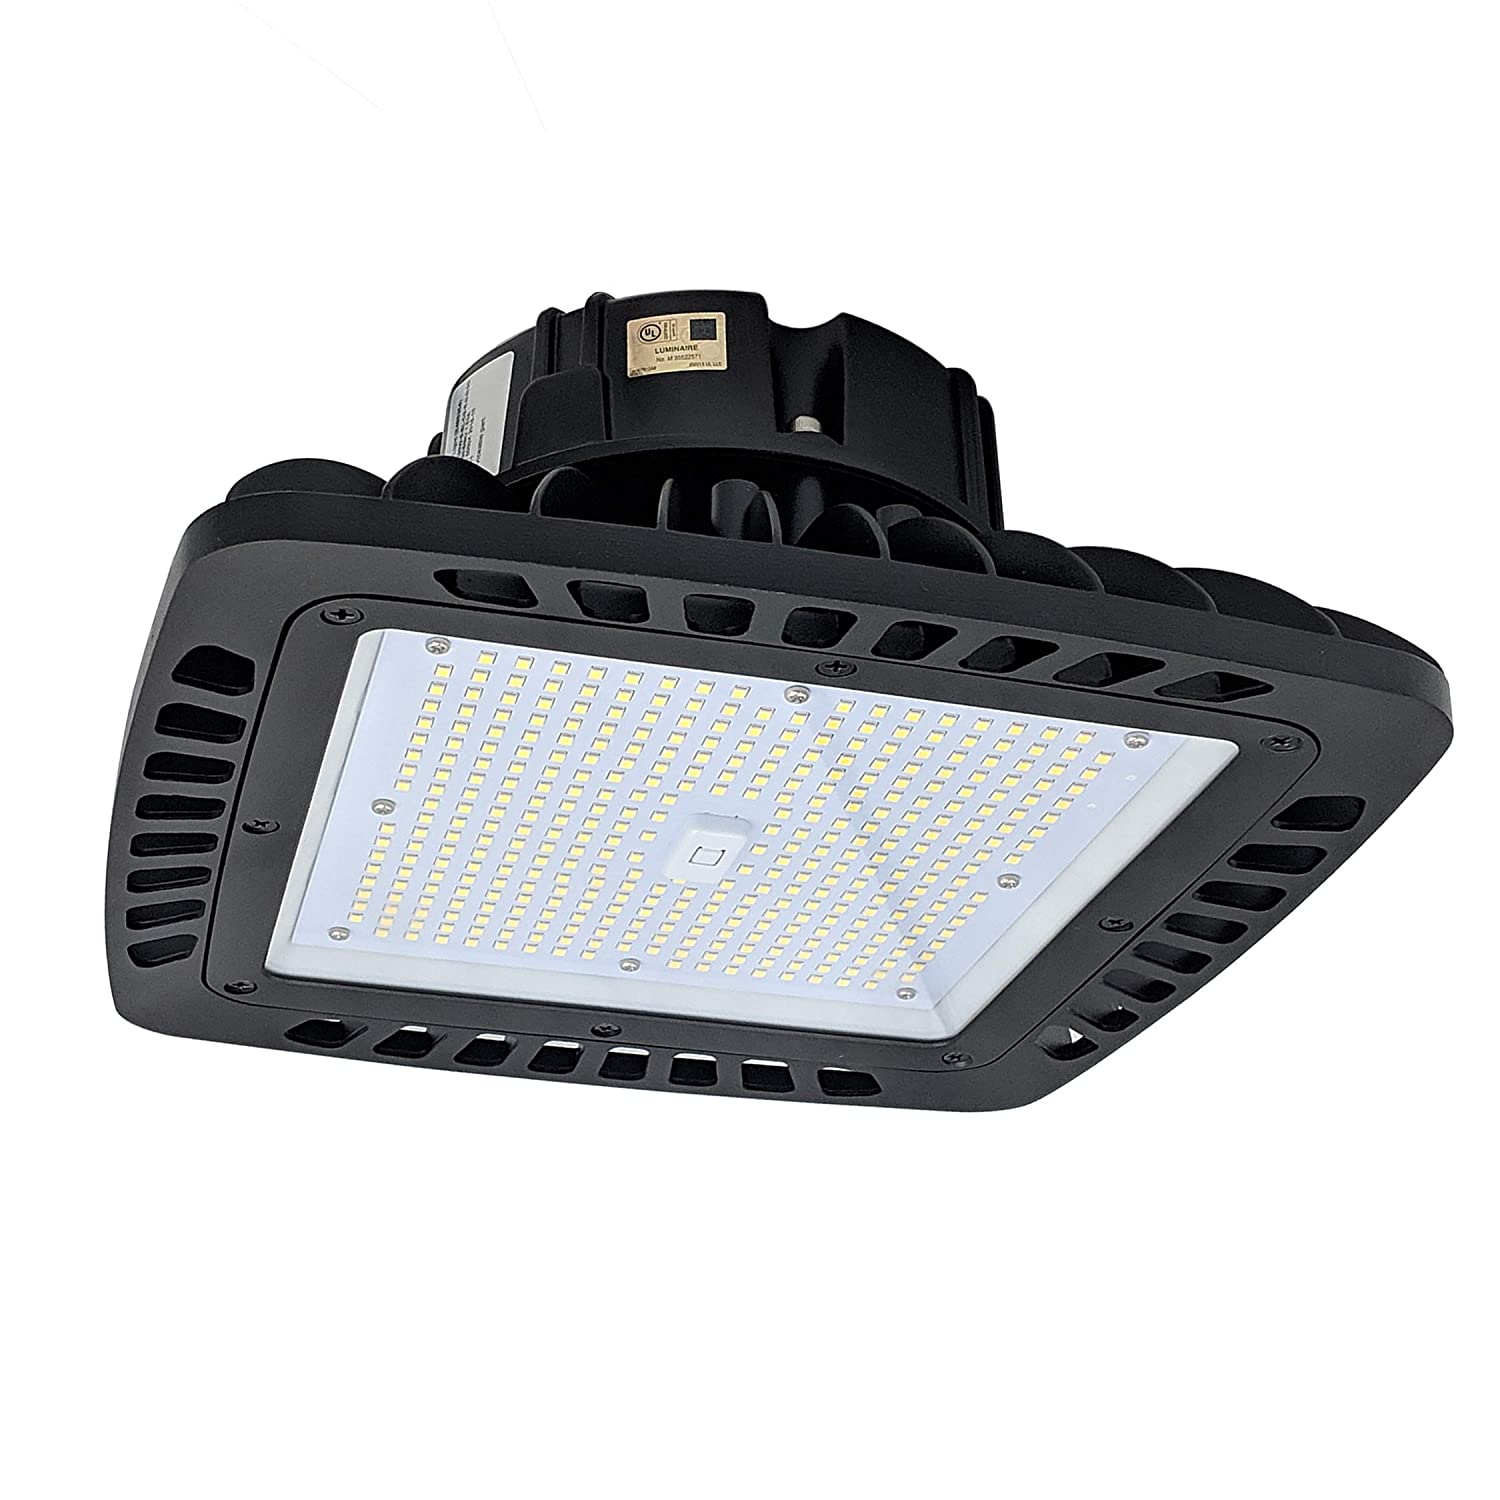 EverWatt 240W LED High Bay Light Fixture, 5000K, 33199 Lumens, Replaces Metal Halides and HPS, and is First Ever Compact LED Replacement for 4ft or 8ft Linear Fixtures for Warehouses and Shop Lights